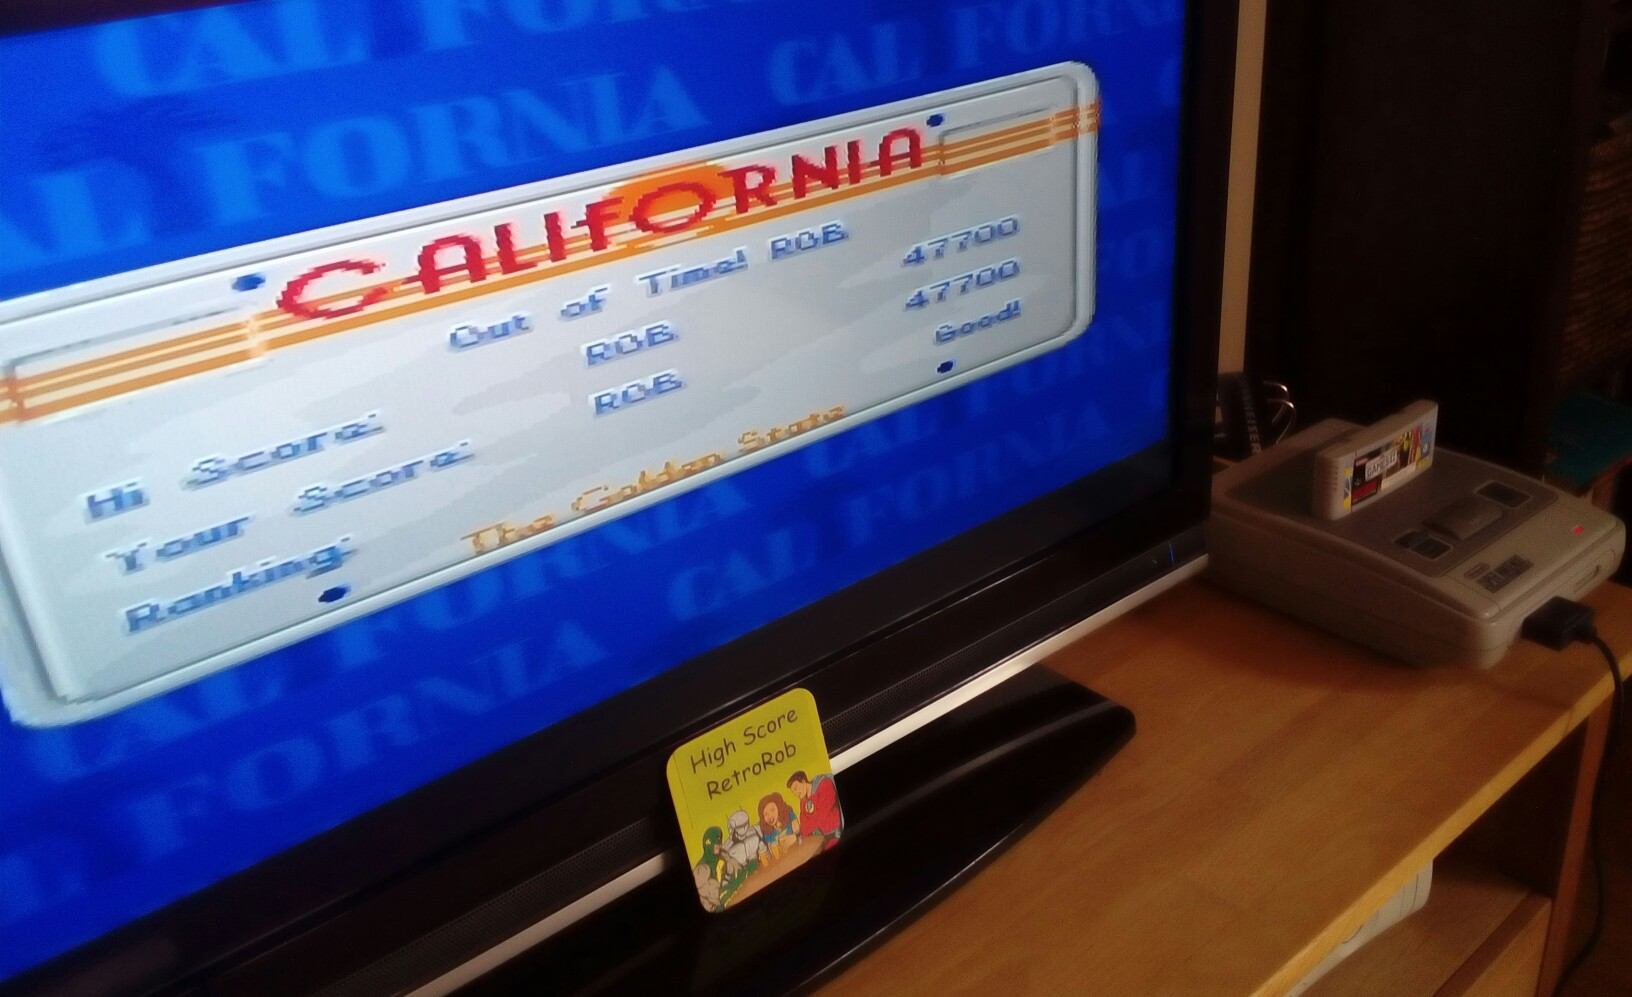 RetroRob: California Games II [Jet Surfing] (SNES/Super Famicom) 47,700 points on 2018-06-10 04:33:03